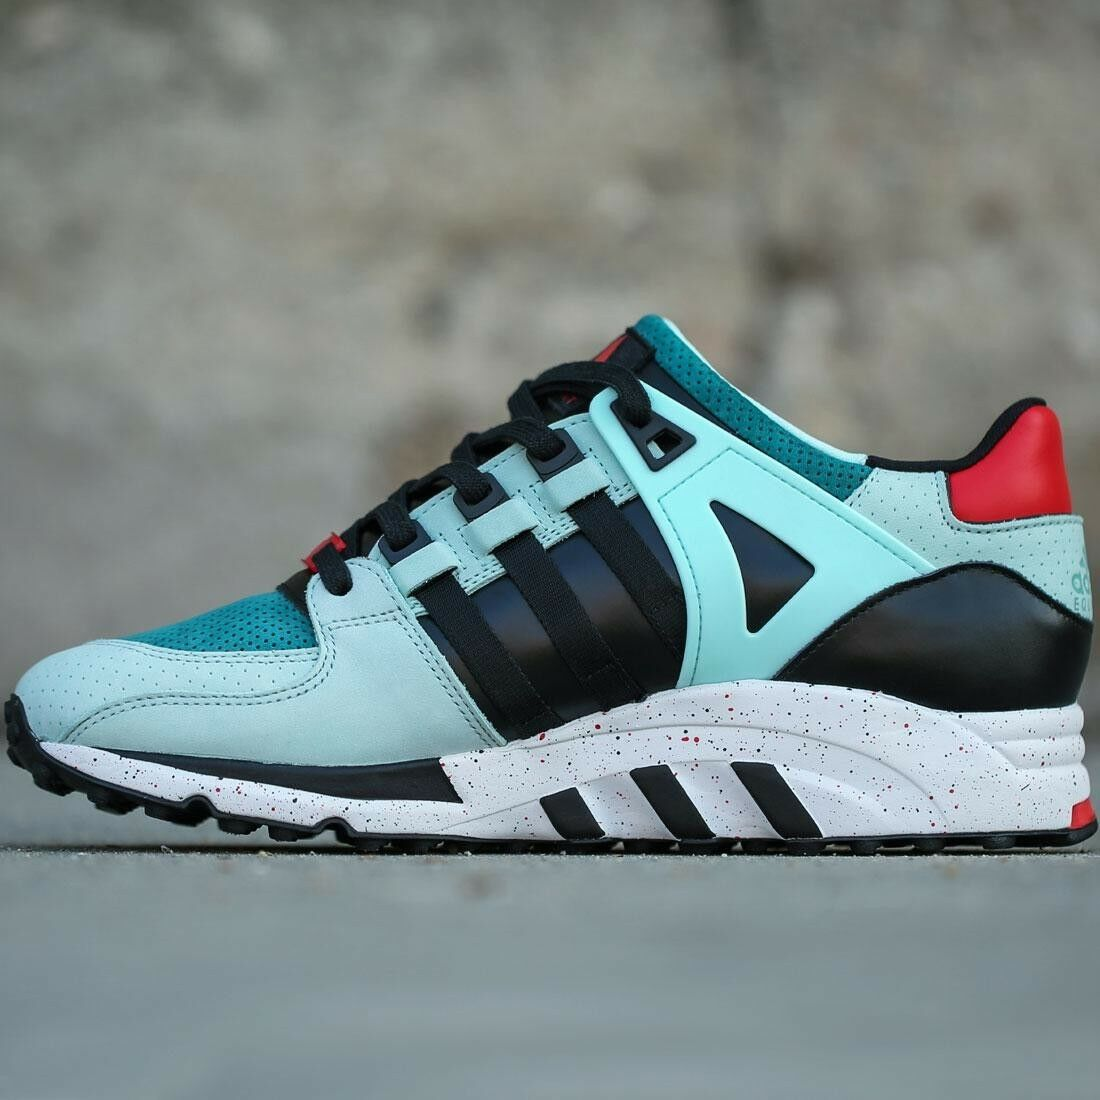 US size 10.0 BAIT x Adidas Original EQT Equipment Running Support The Big Apple